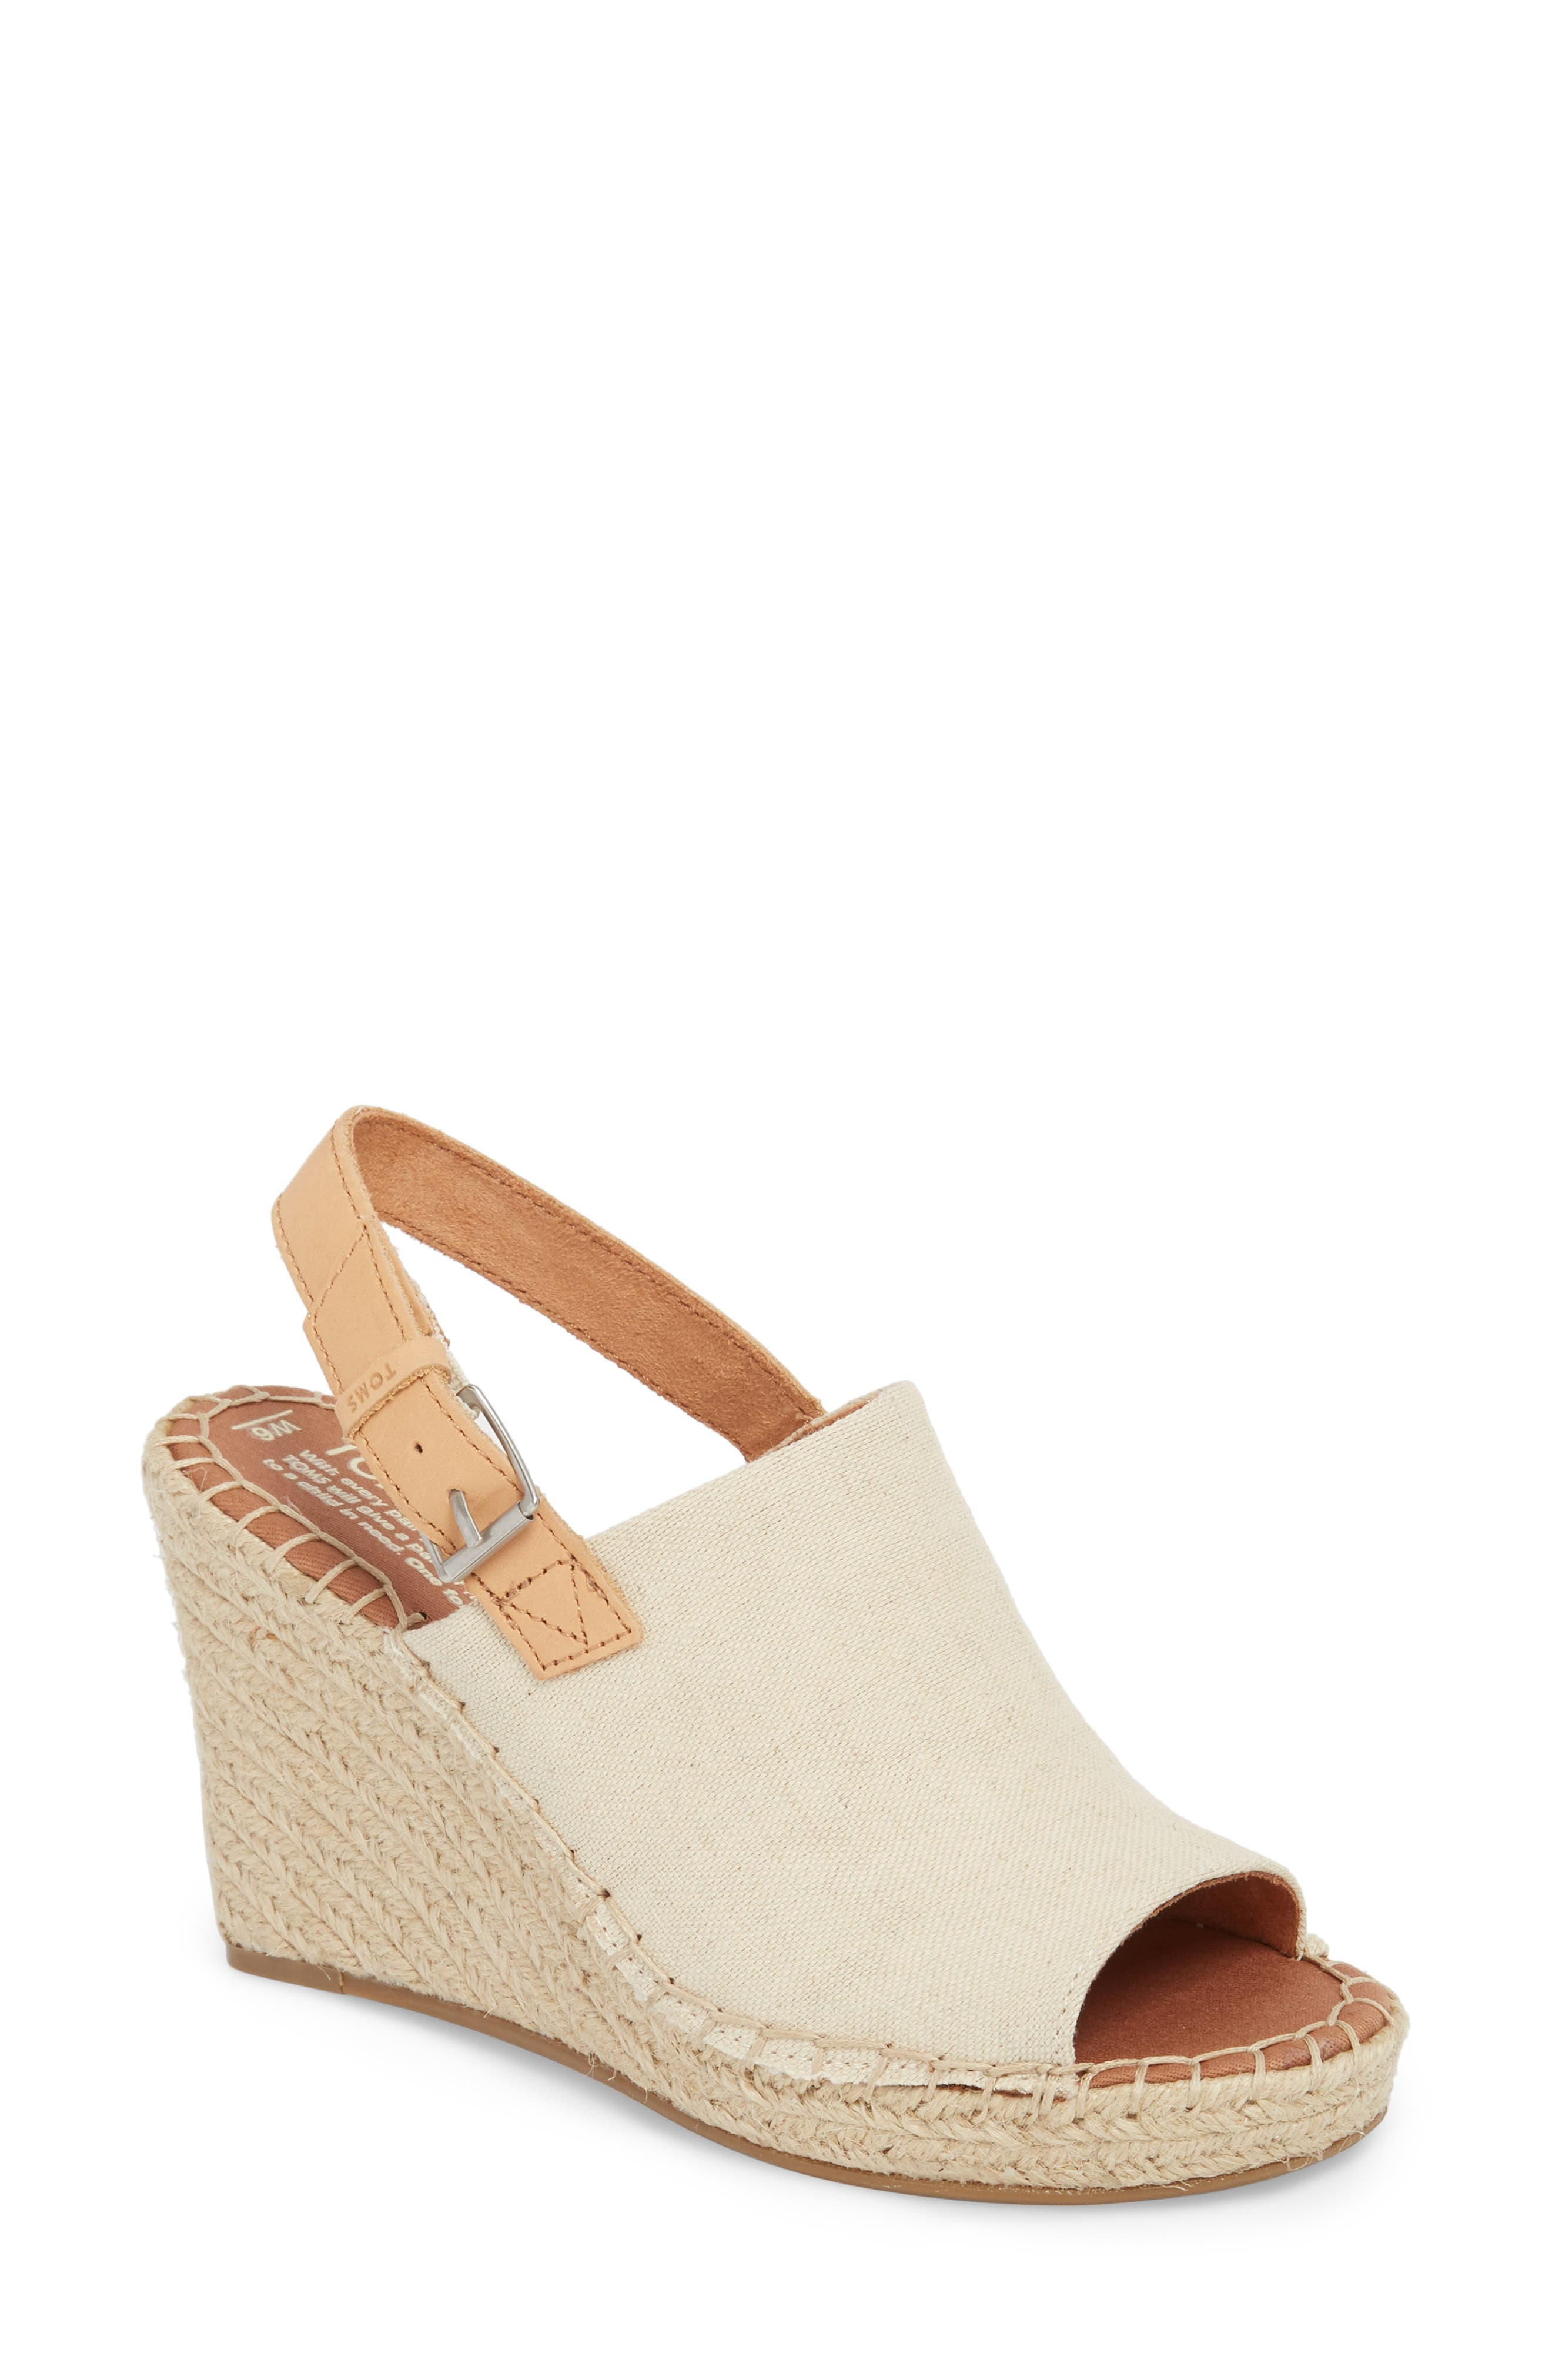 Monica Slingback Wedge,                             Main thumbnail 1, color,                             Natural Hemp/ Leather